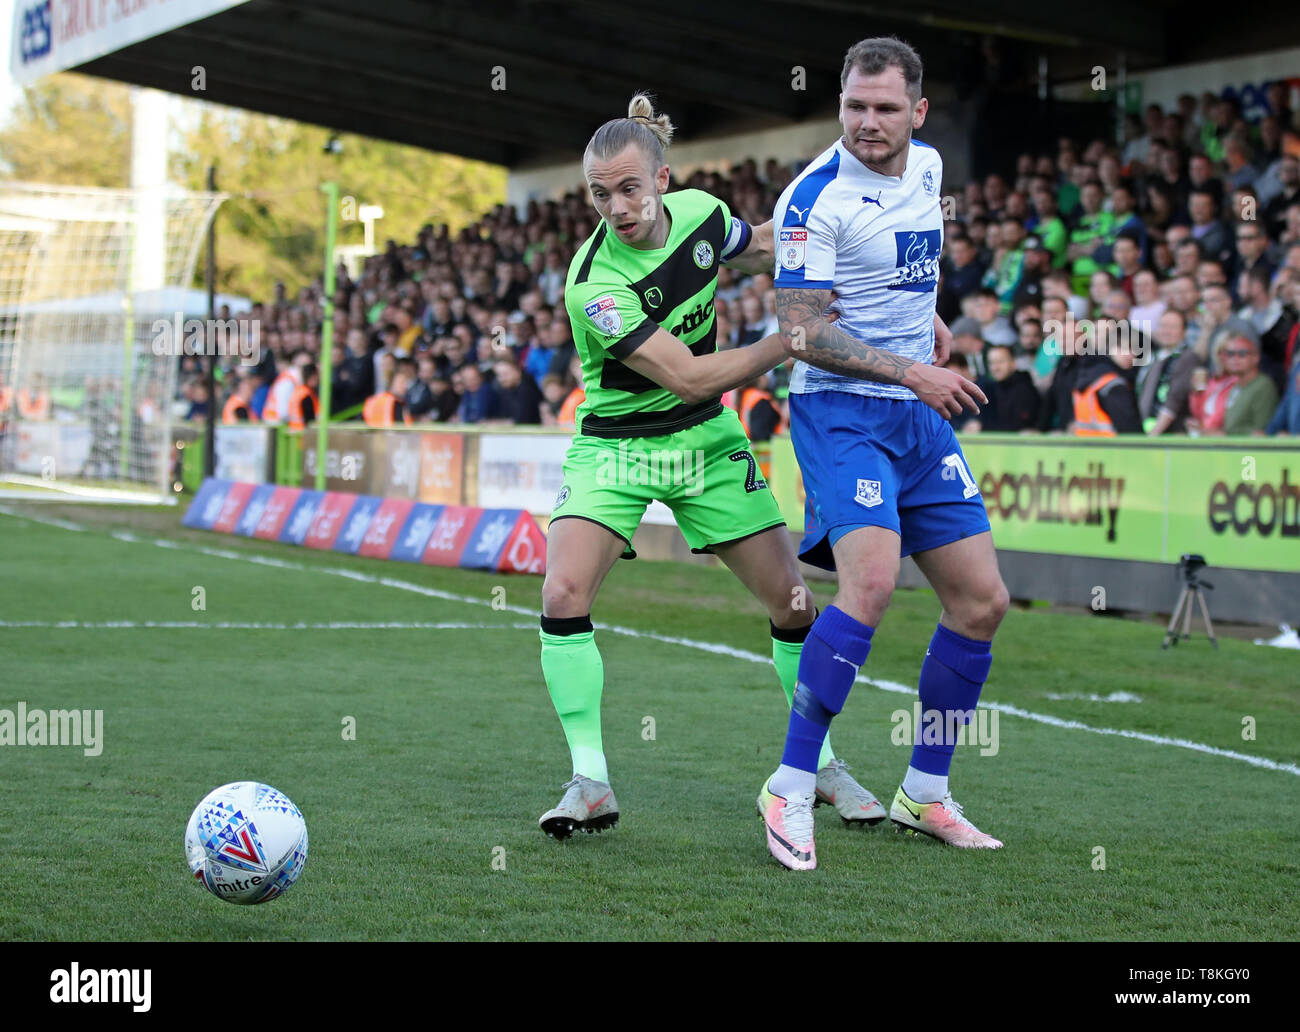 Forest Green Rovers' Joseph Mills and Tramere Rovers' James Norwood (right) battle for the ball during the Sky Bet League Two, Play-Off, Second Leg match at The New Lawn, Nailsworth. - Stock Image